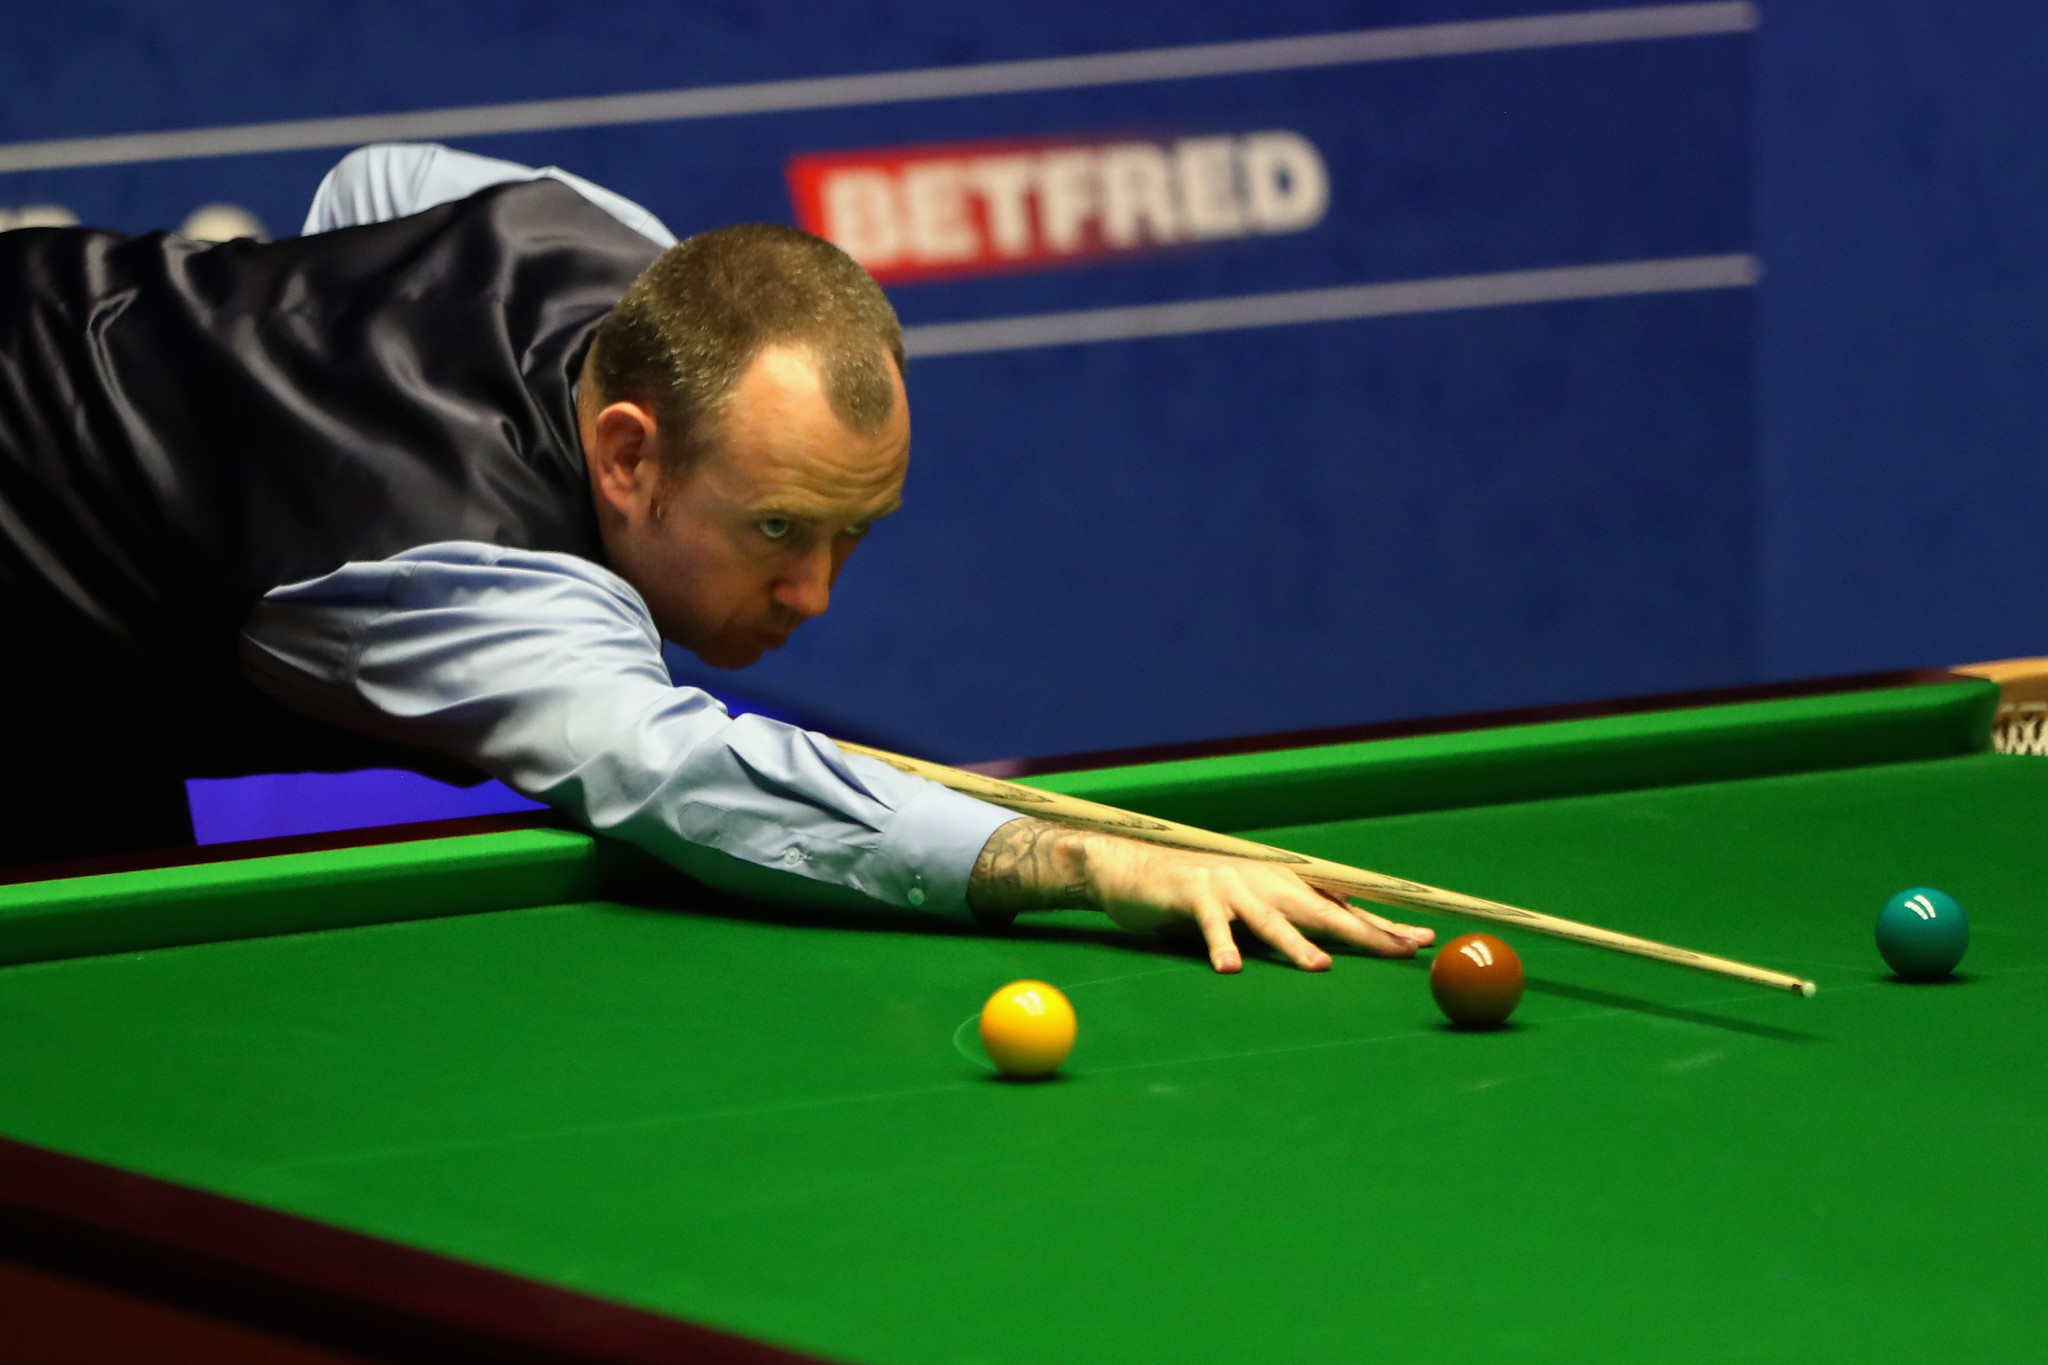 Defending champion Williams progresses into second round of World Snooker Championship